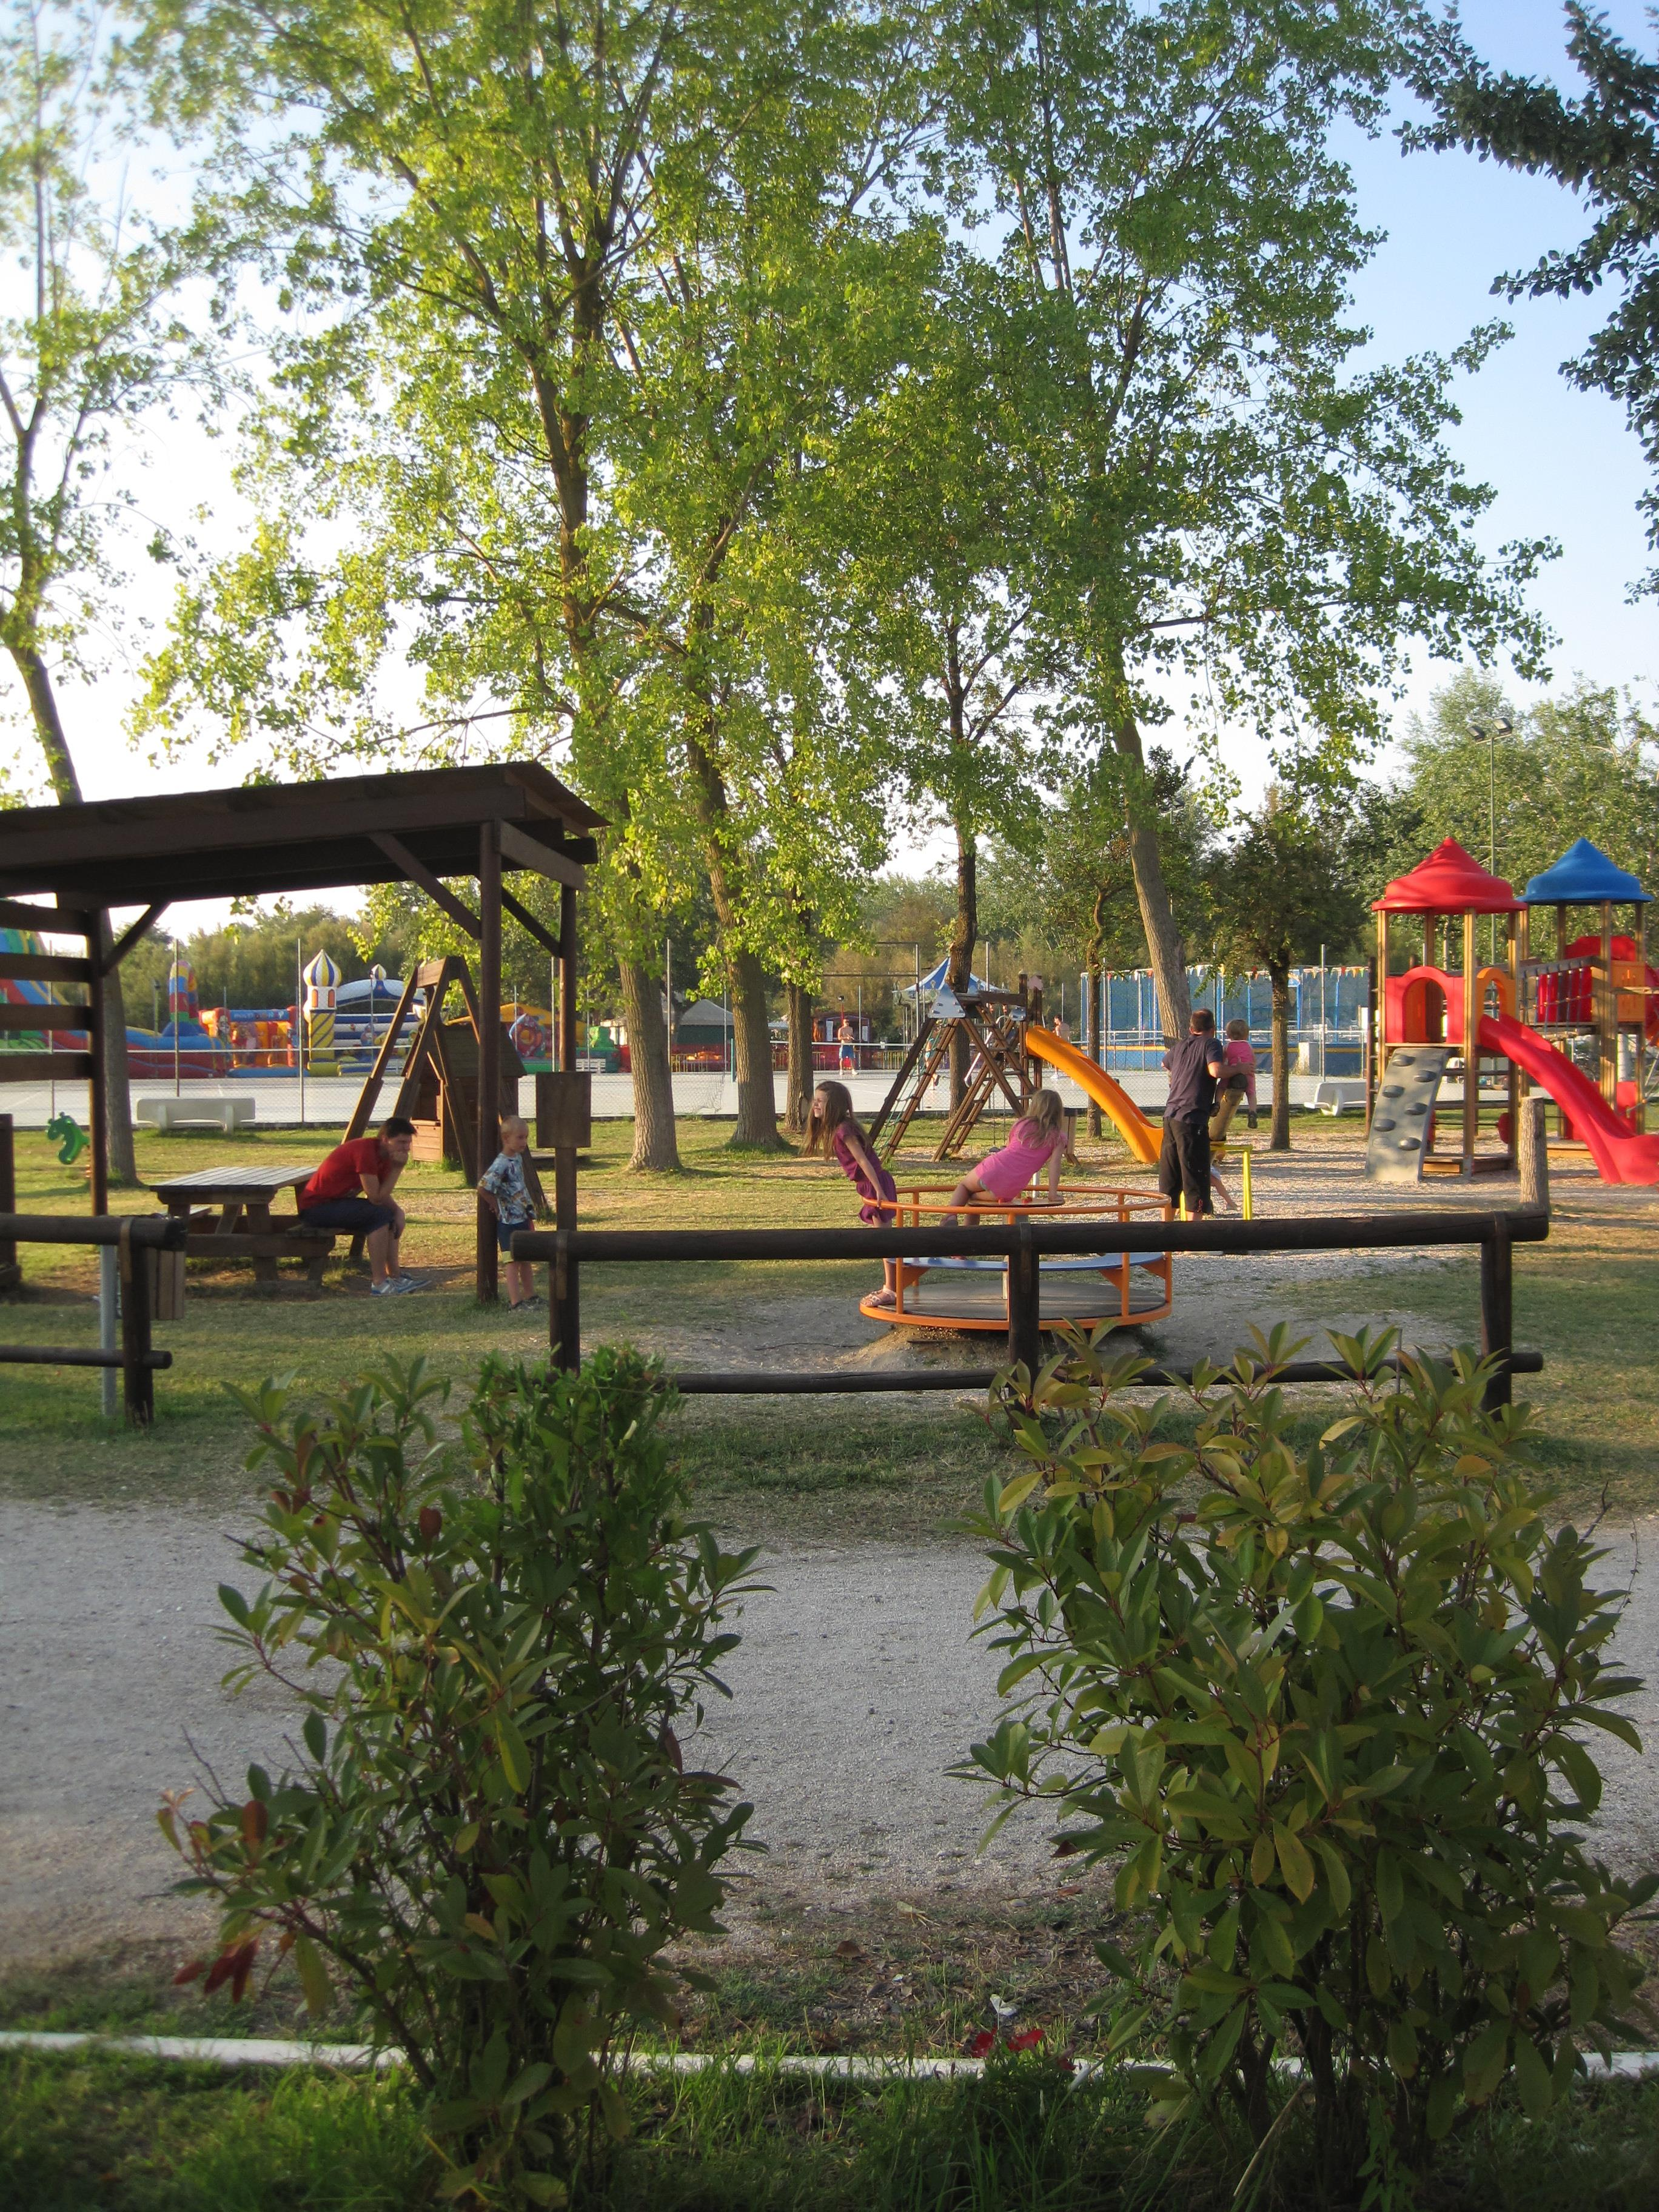 Sport Spina Family Camping Village - Lido Di Spina